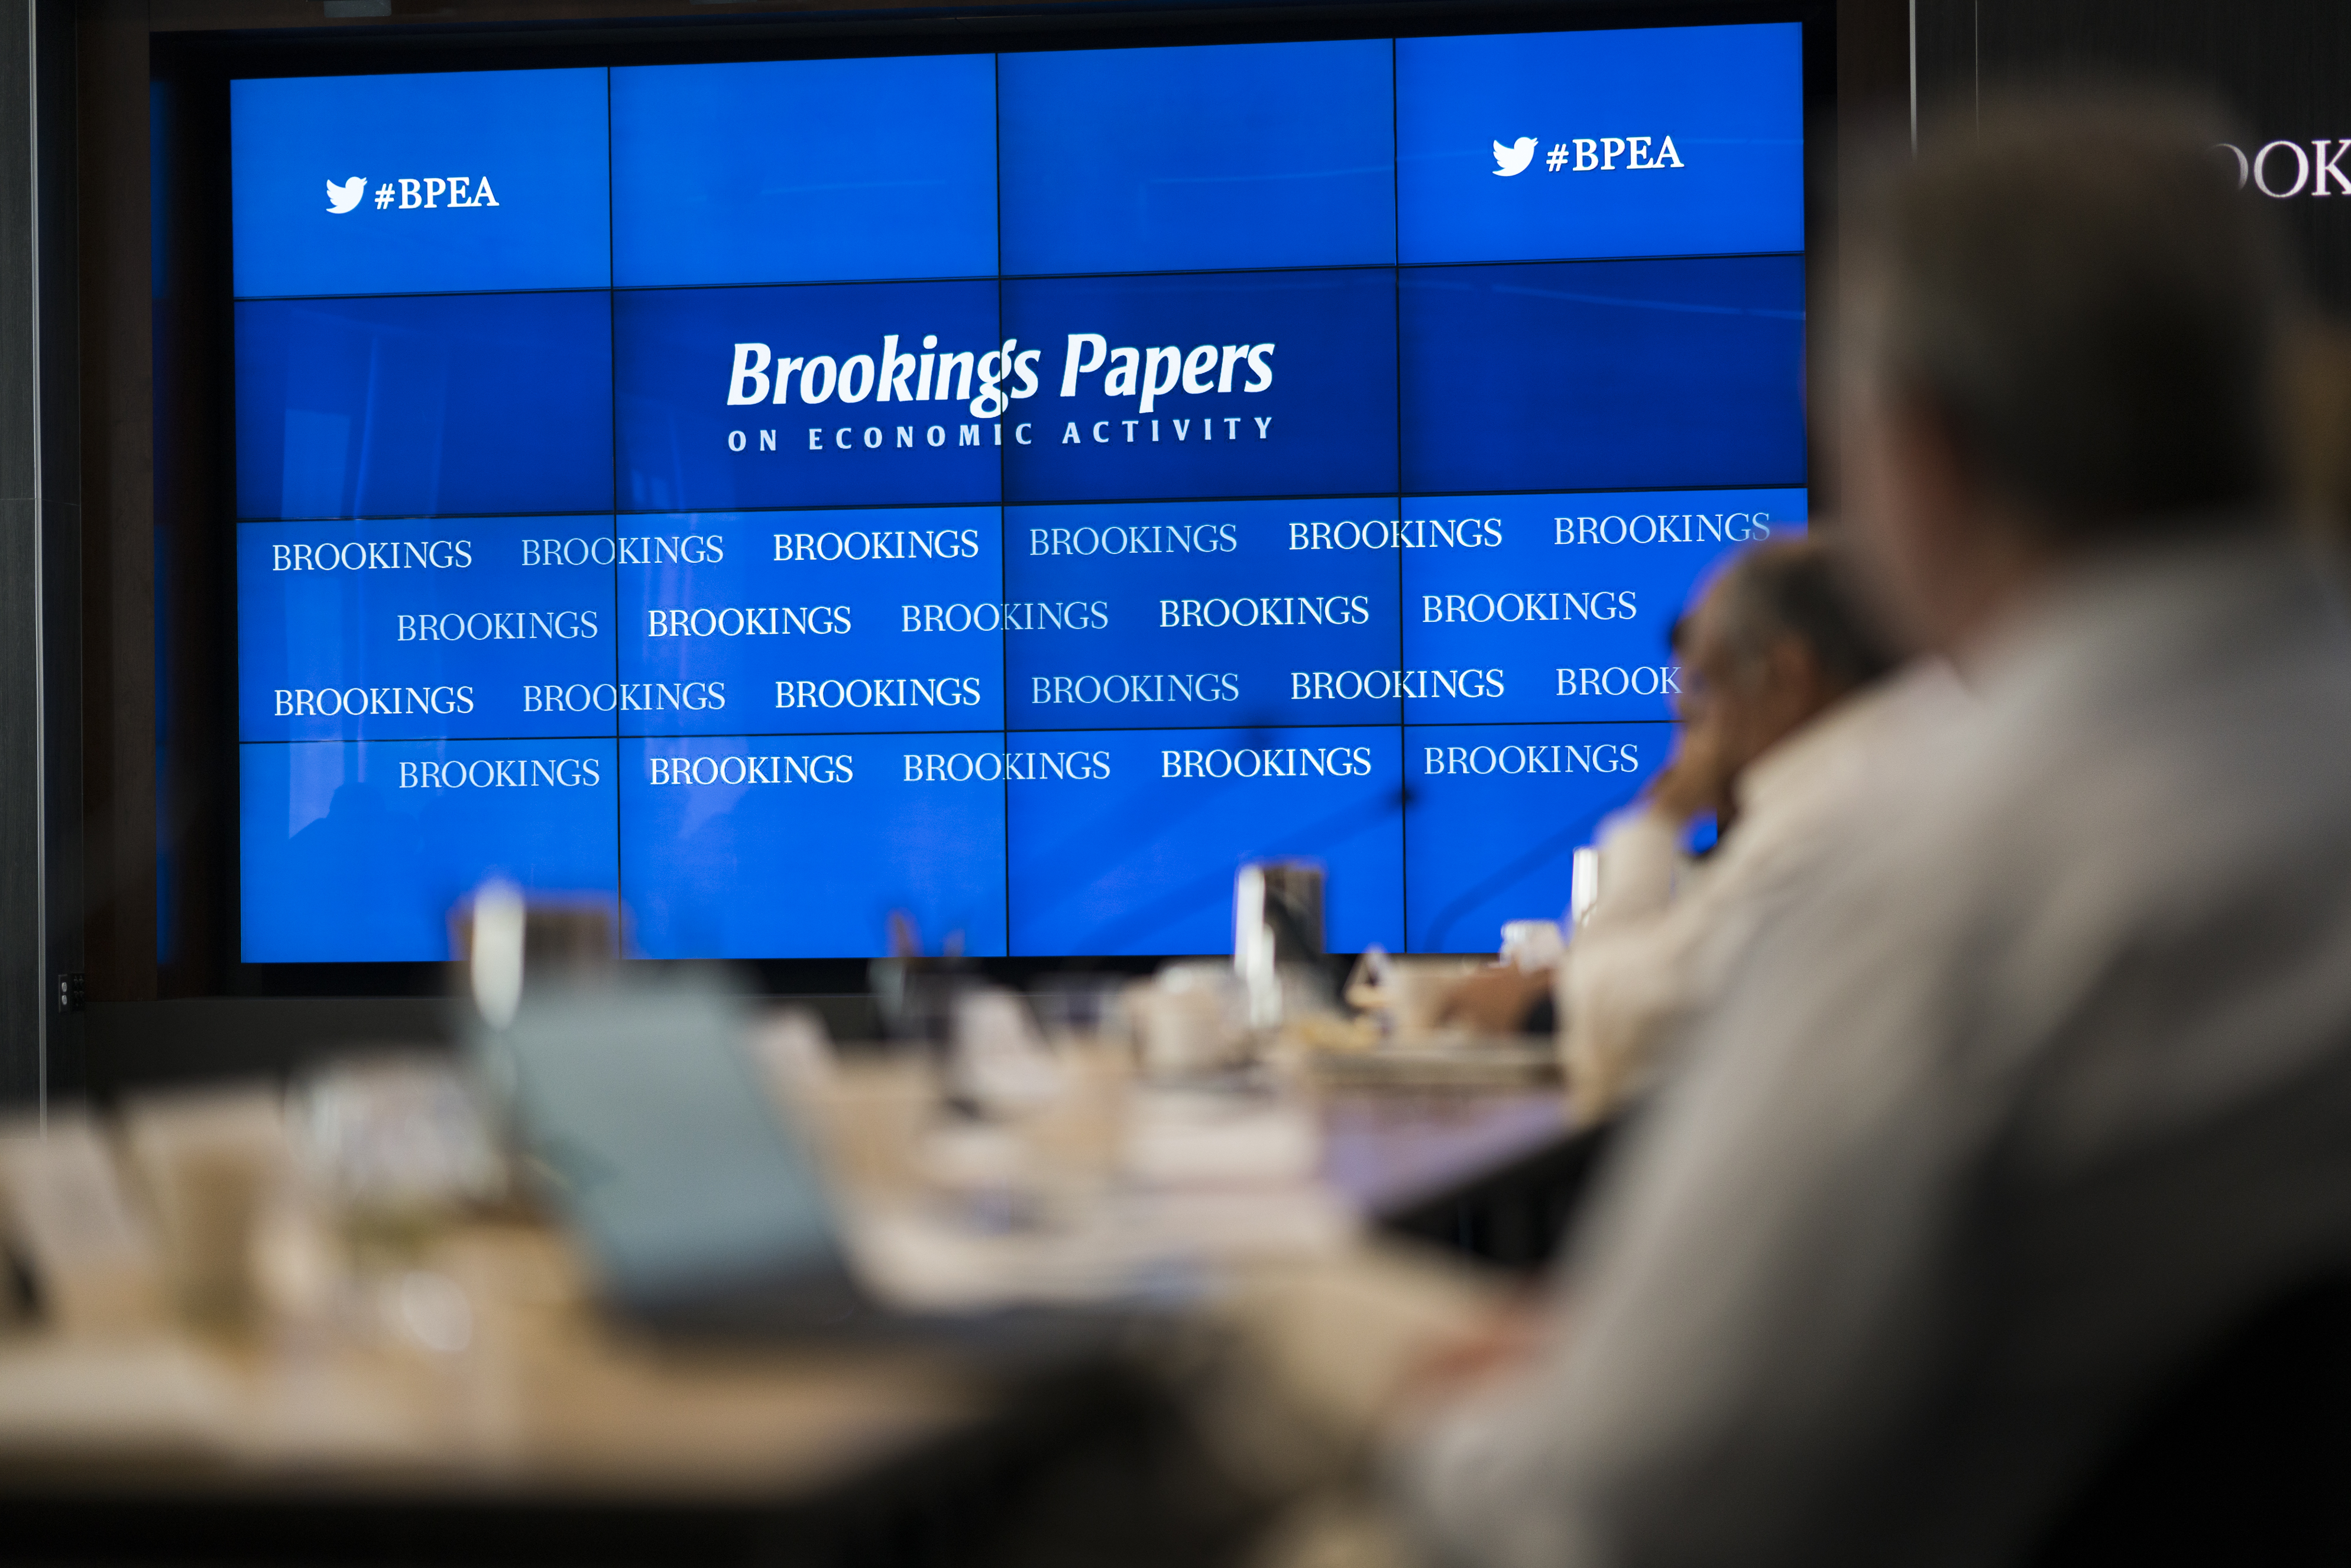 brookings papers on economic activity impact factor The brookings papers on economic activity (bpea) is a journal of macroeconomics published twice a year by the brookings institution press.